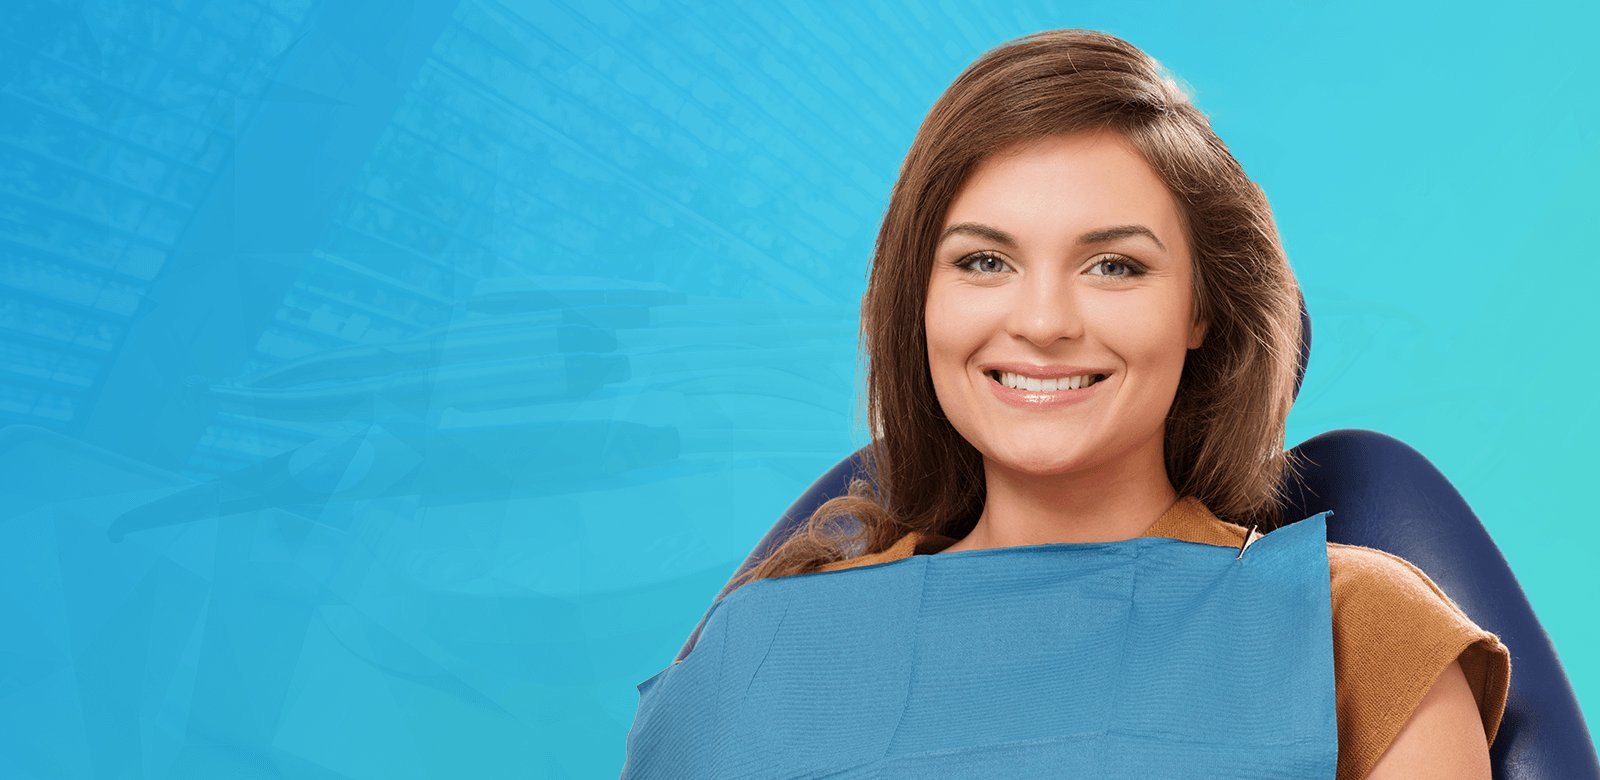 Northampton Dental Group, PC - Slider